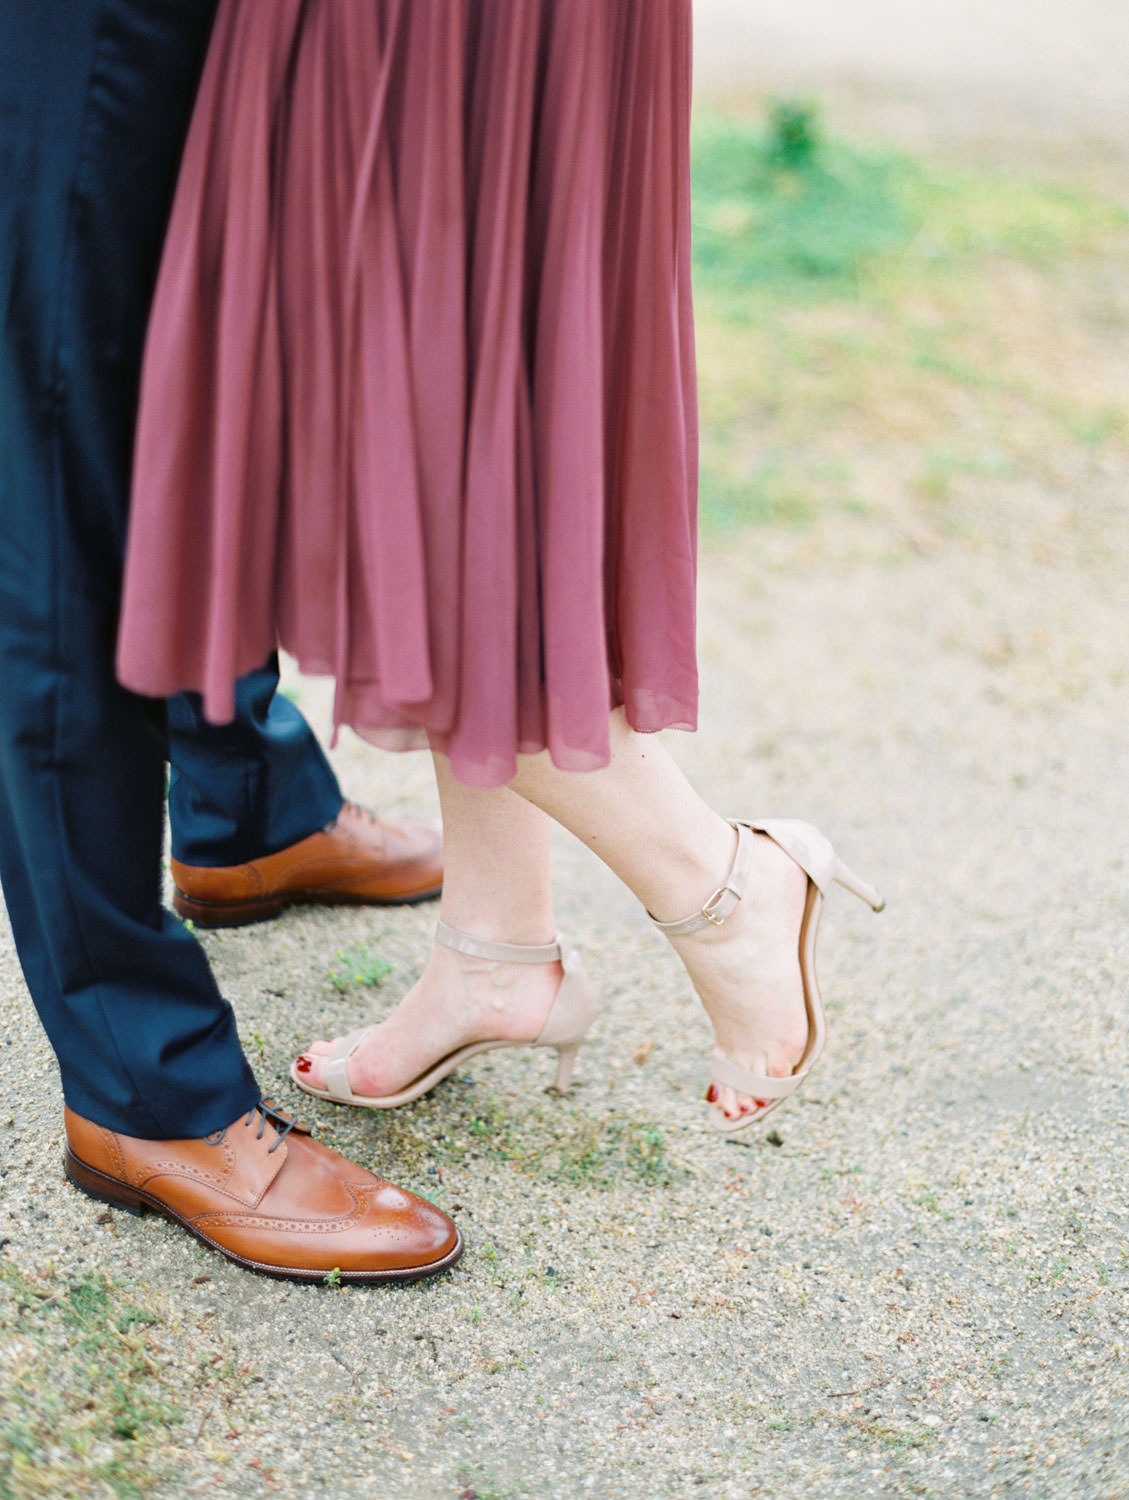 Bride in a deep mauve dress with neutral heels and groom in navy suit and brown shoes. Film Engagement Photos at Golden Gate Park by Cavin Elizabeth